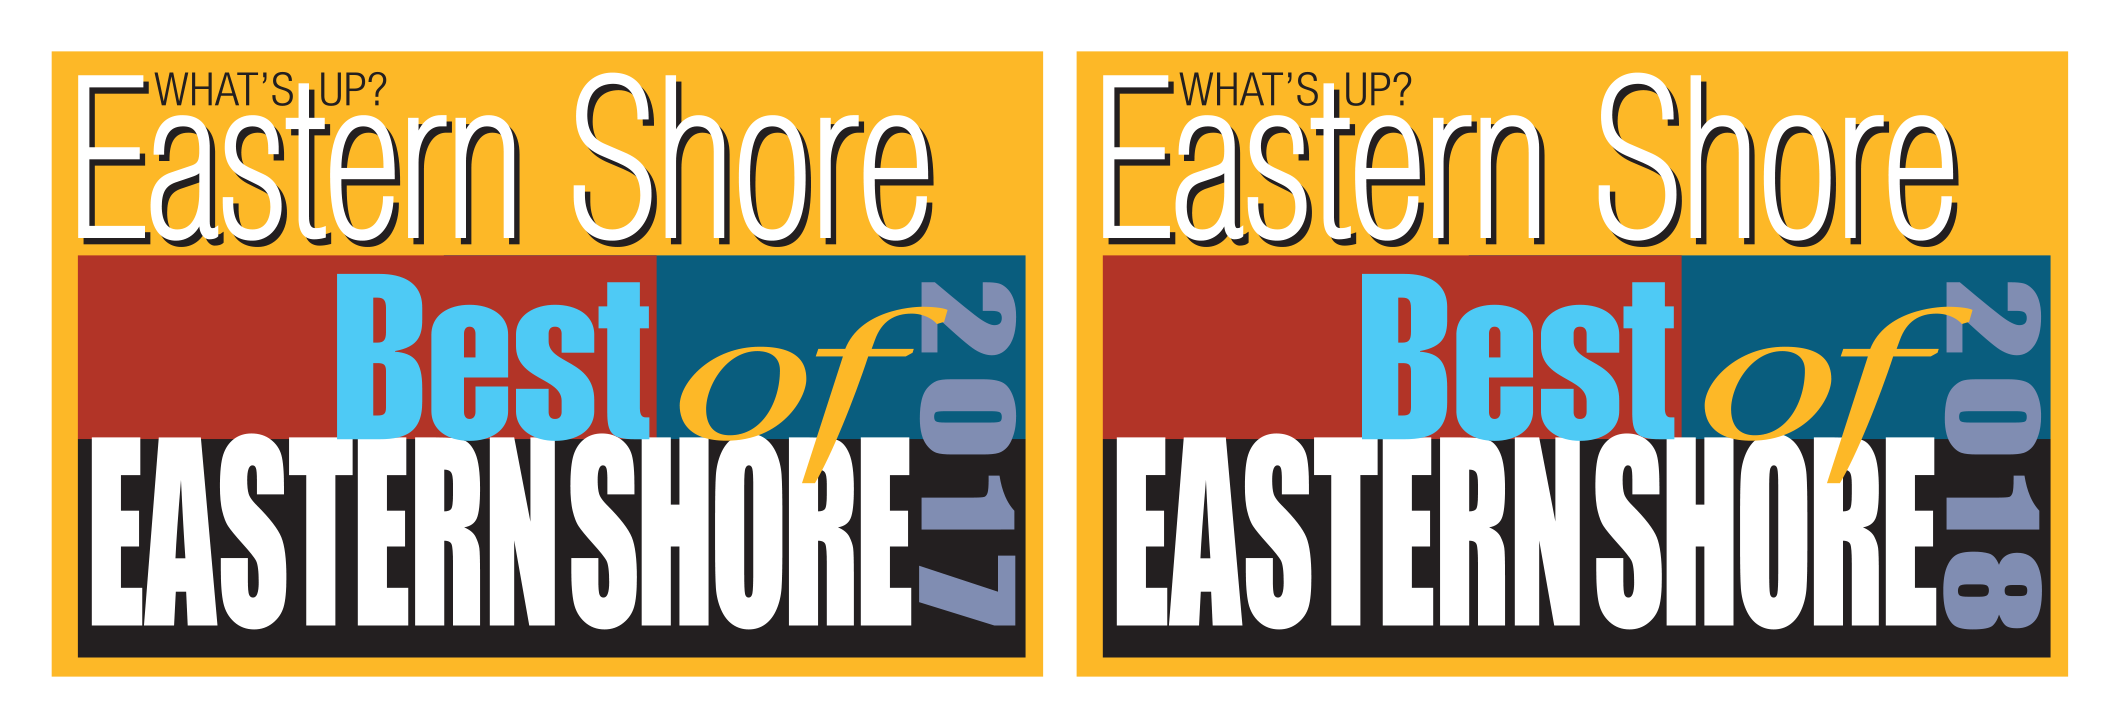 Best of Eastern Shore 2017 and 2018 logos